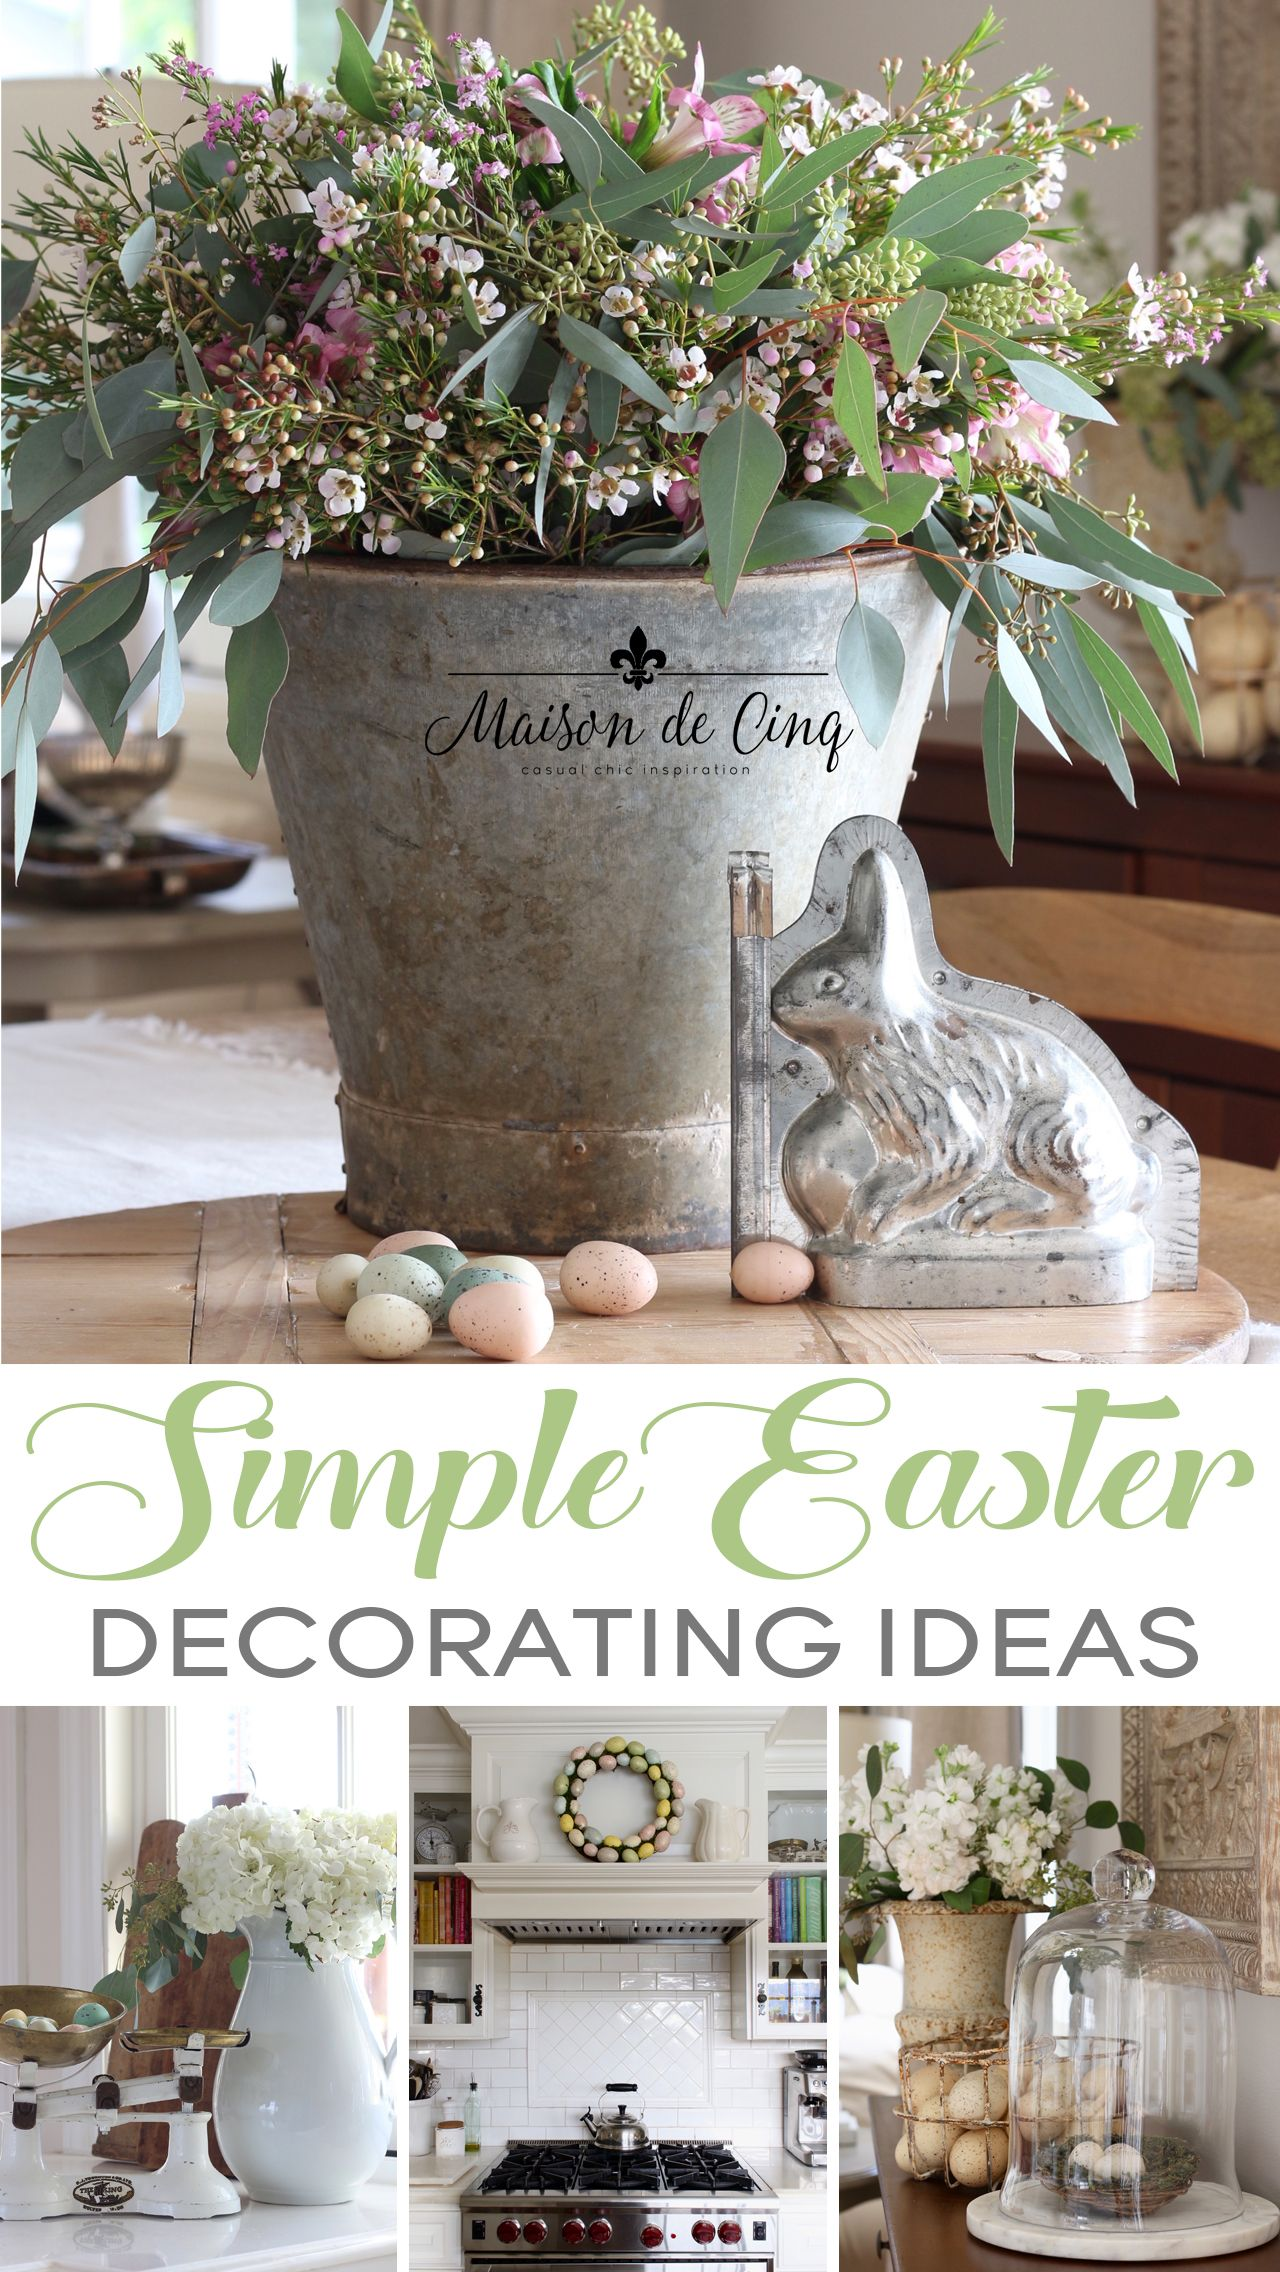 Easter Decorating In The Kitchen Simple Ideas For Easter Decor In 2021 Easter Centerpieces Easy Easter Decorations Holiday Decorations Easter